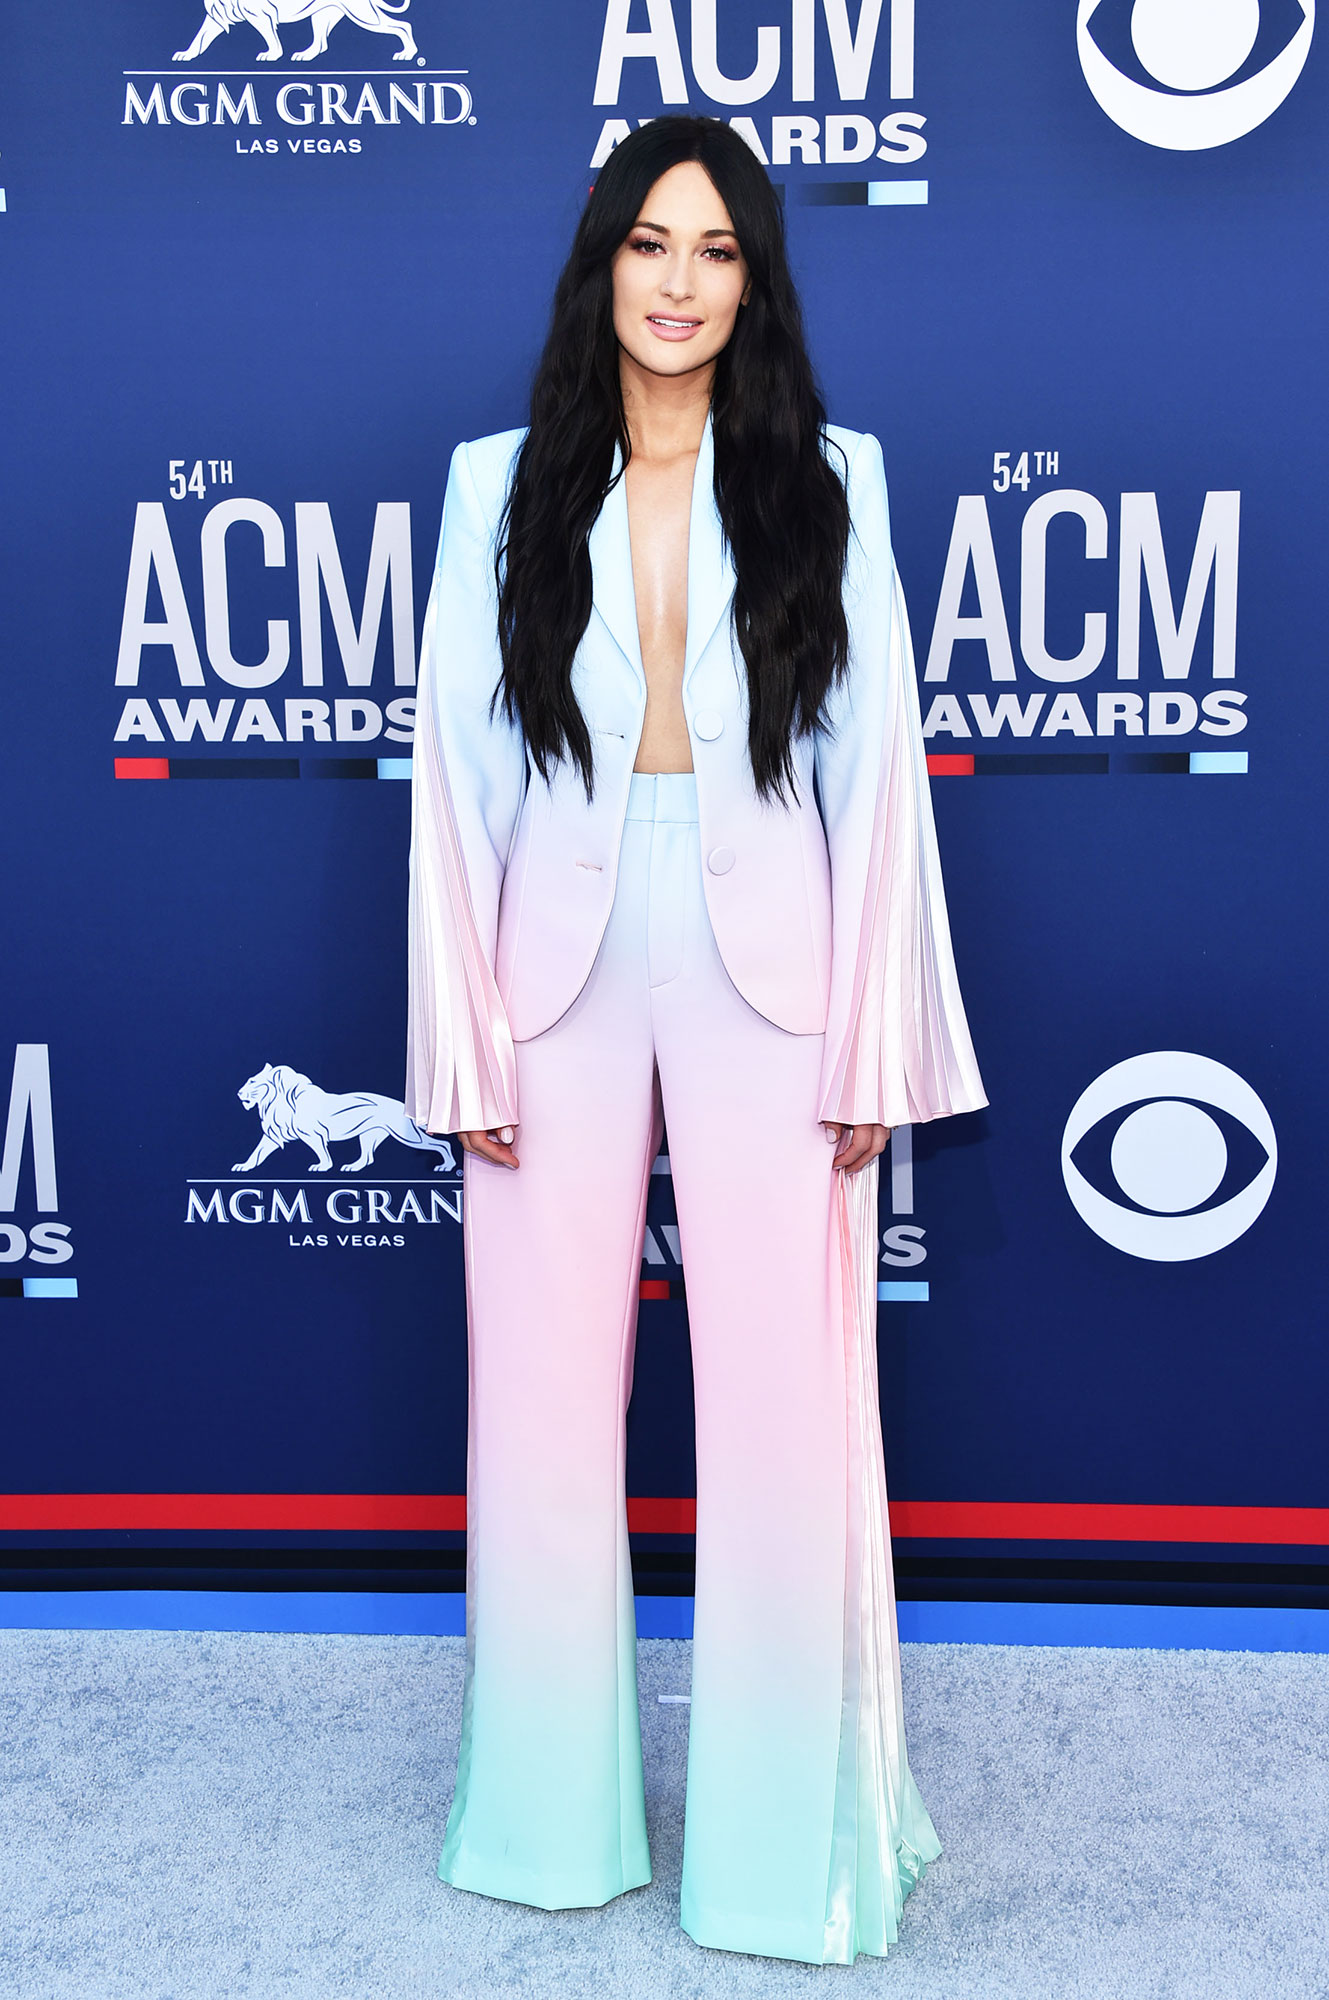 """Kacey Musgraves The Best Looks From the Country Music Awards Red Carpet - Taking home Female Artist of the Year, the """"Golden Hour"""" songwriter was a sight to be seen in her ombre rainbow pastel pantsuit."""